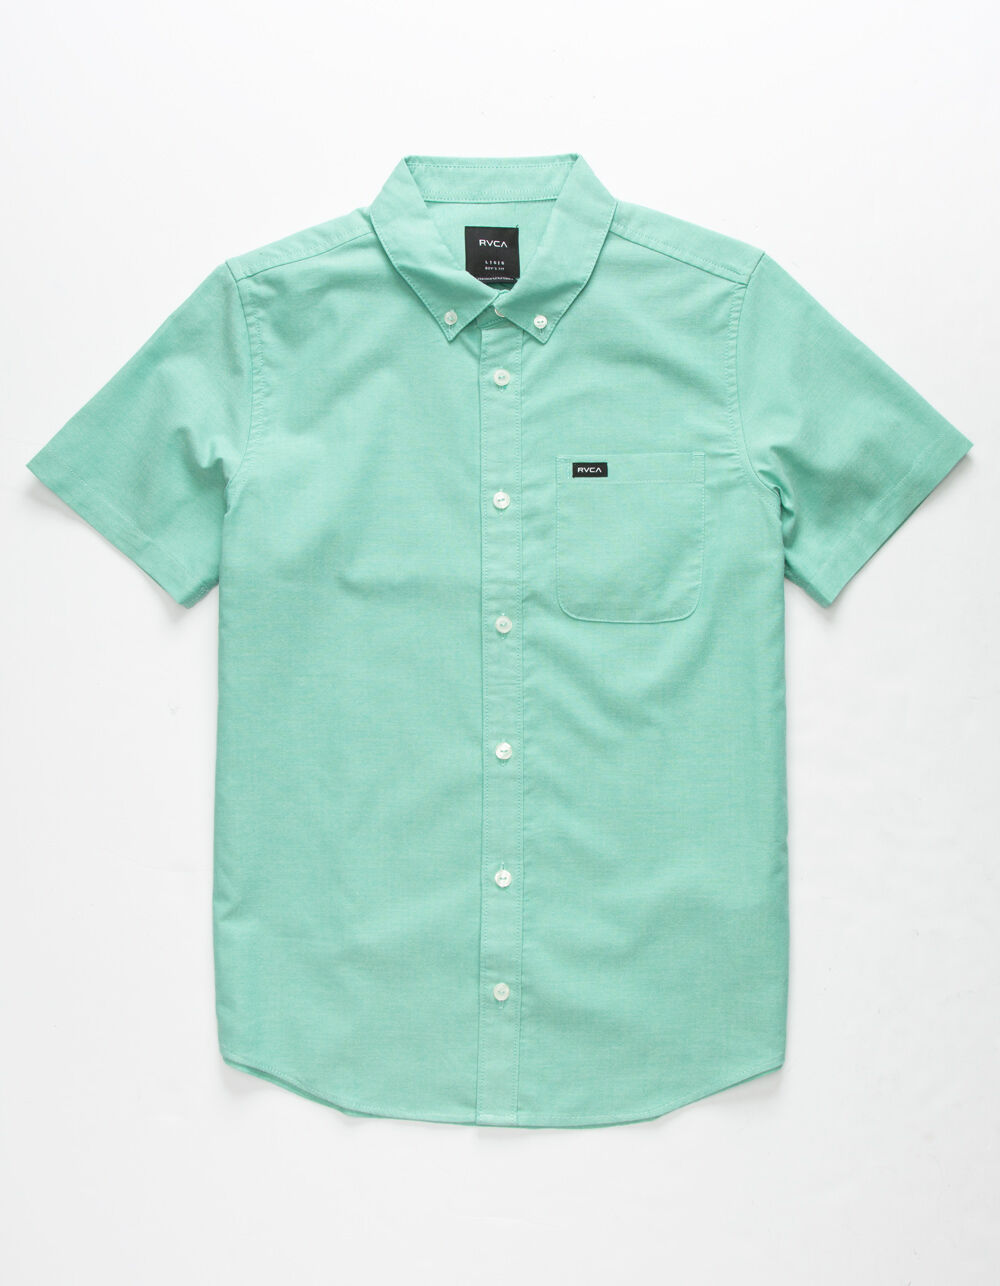 RVCA That'll Do Stretch Boys Teal Green Shirt